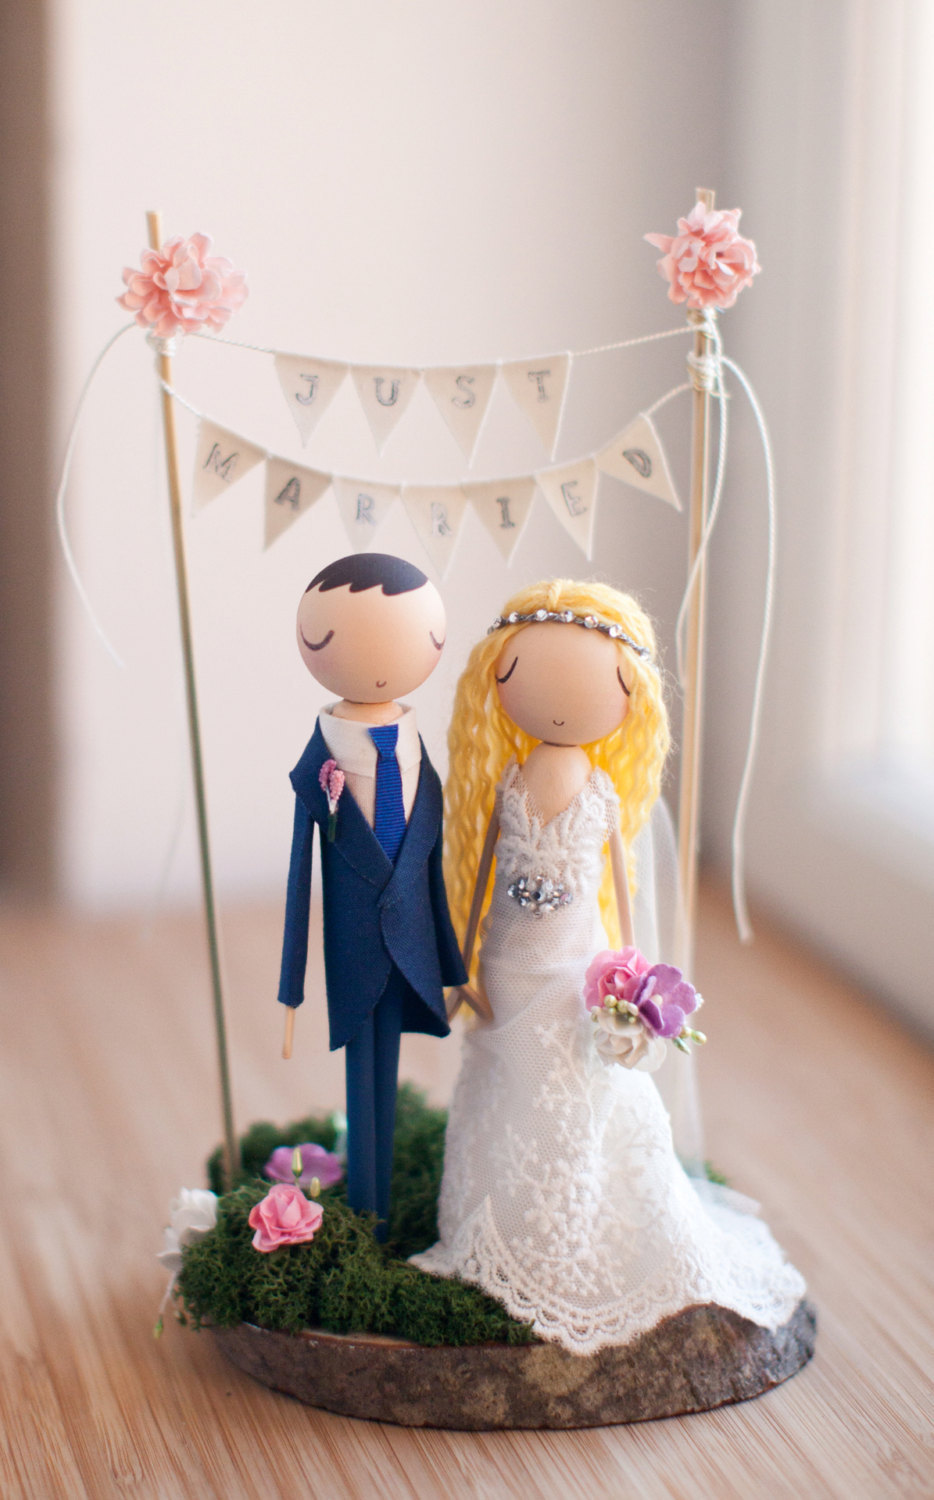 theroomba wedding cake topper